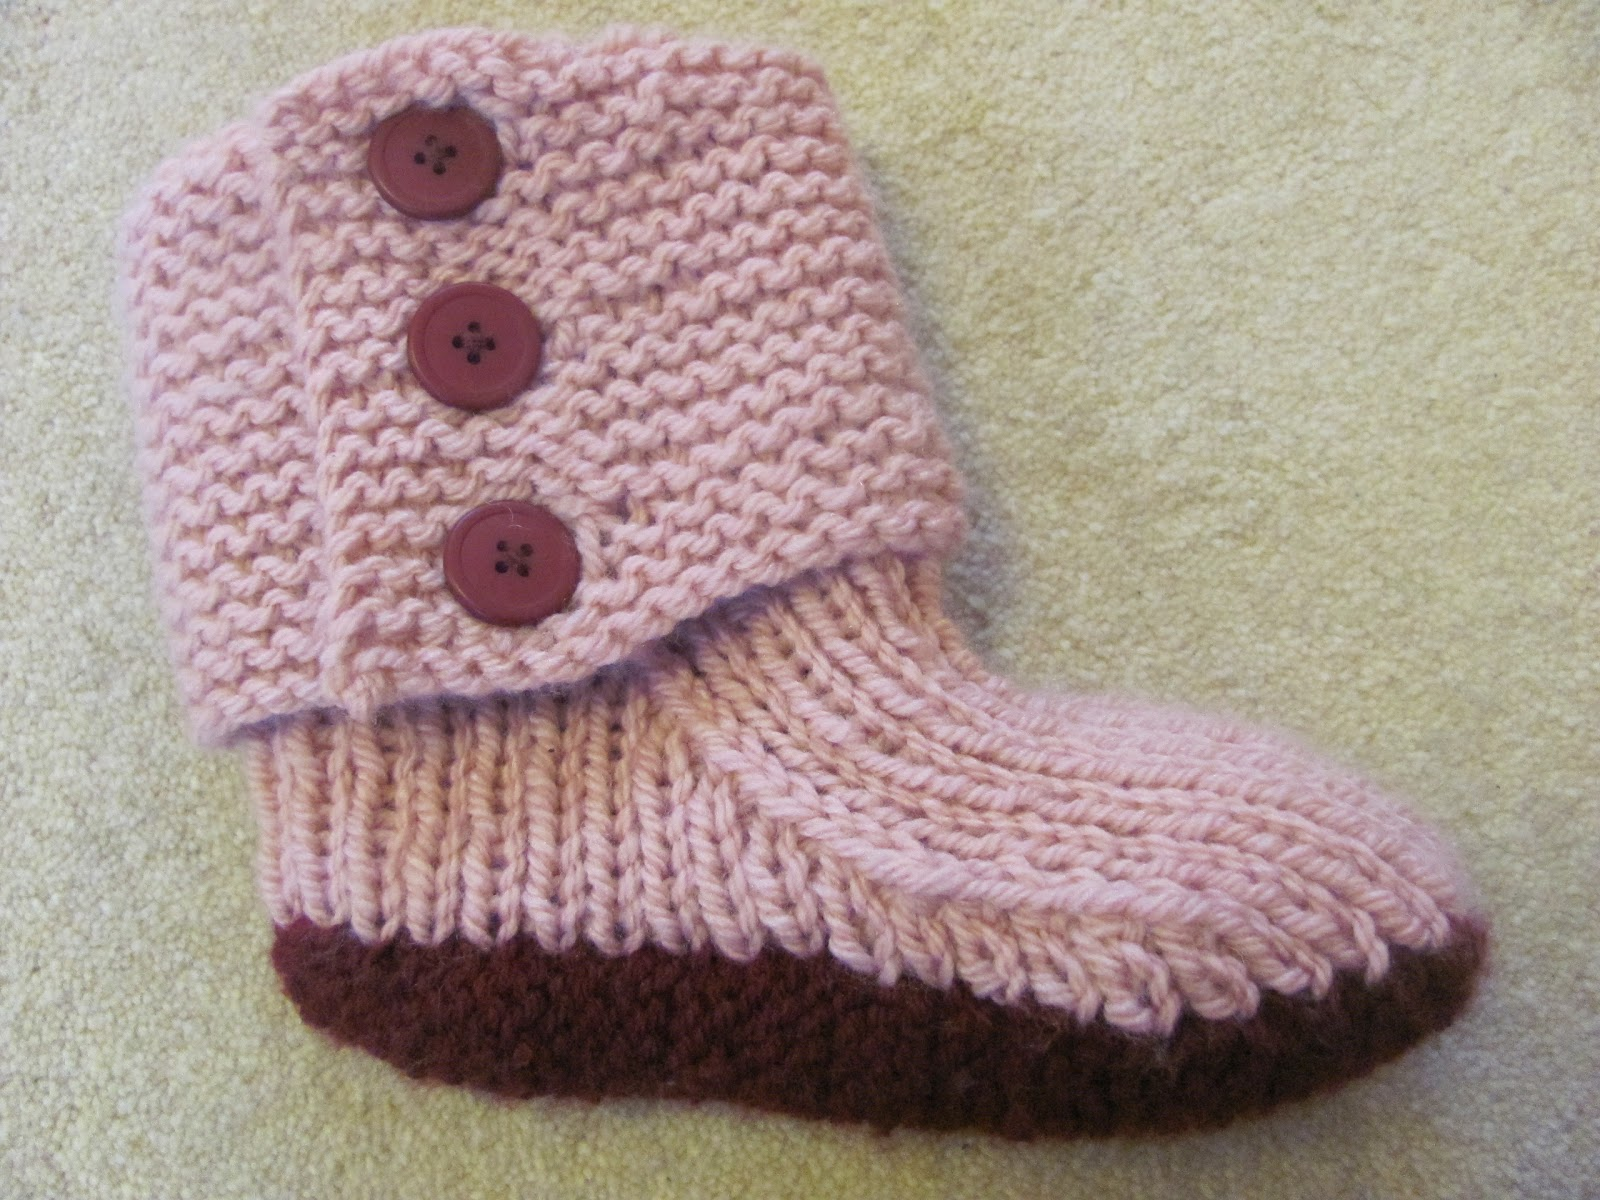 Knitting Patterns For Slippers : Slippers Pattern Knitting Patterns Gallery